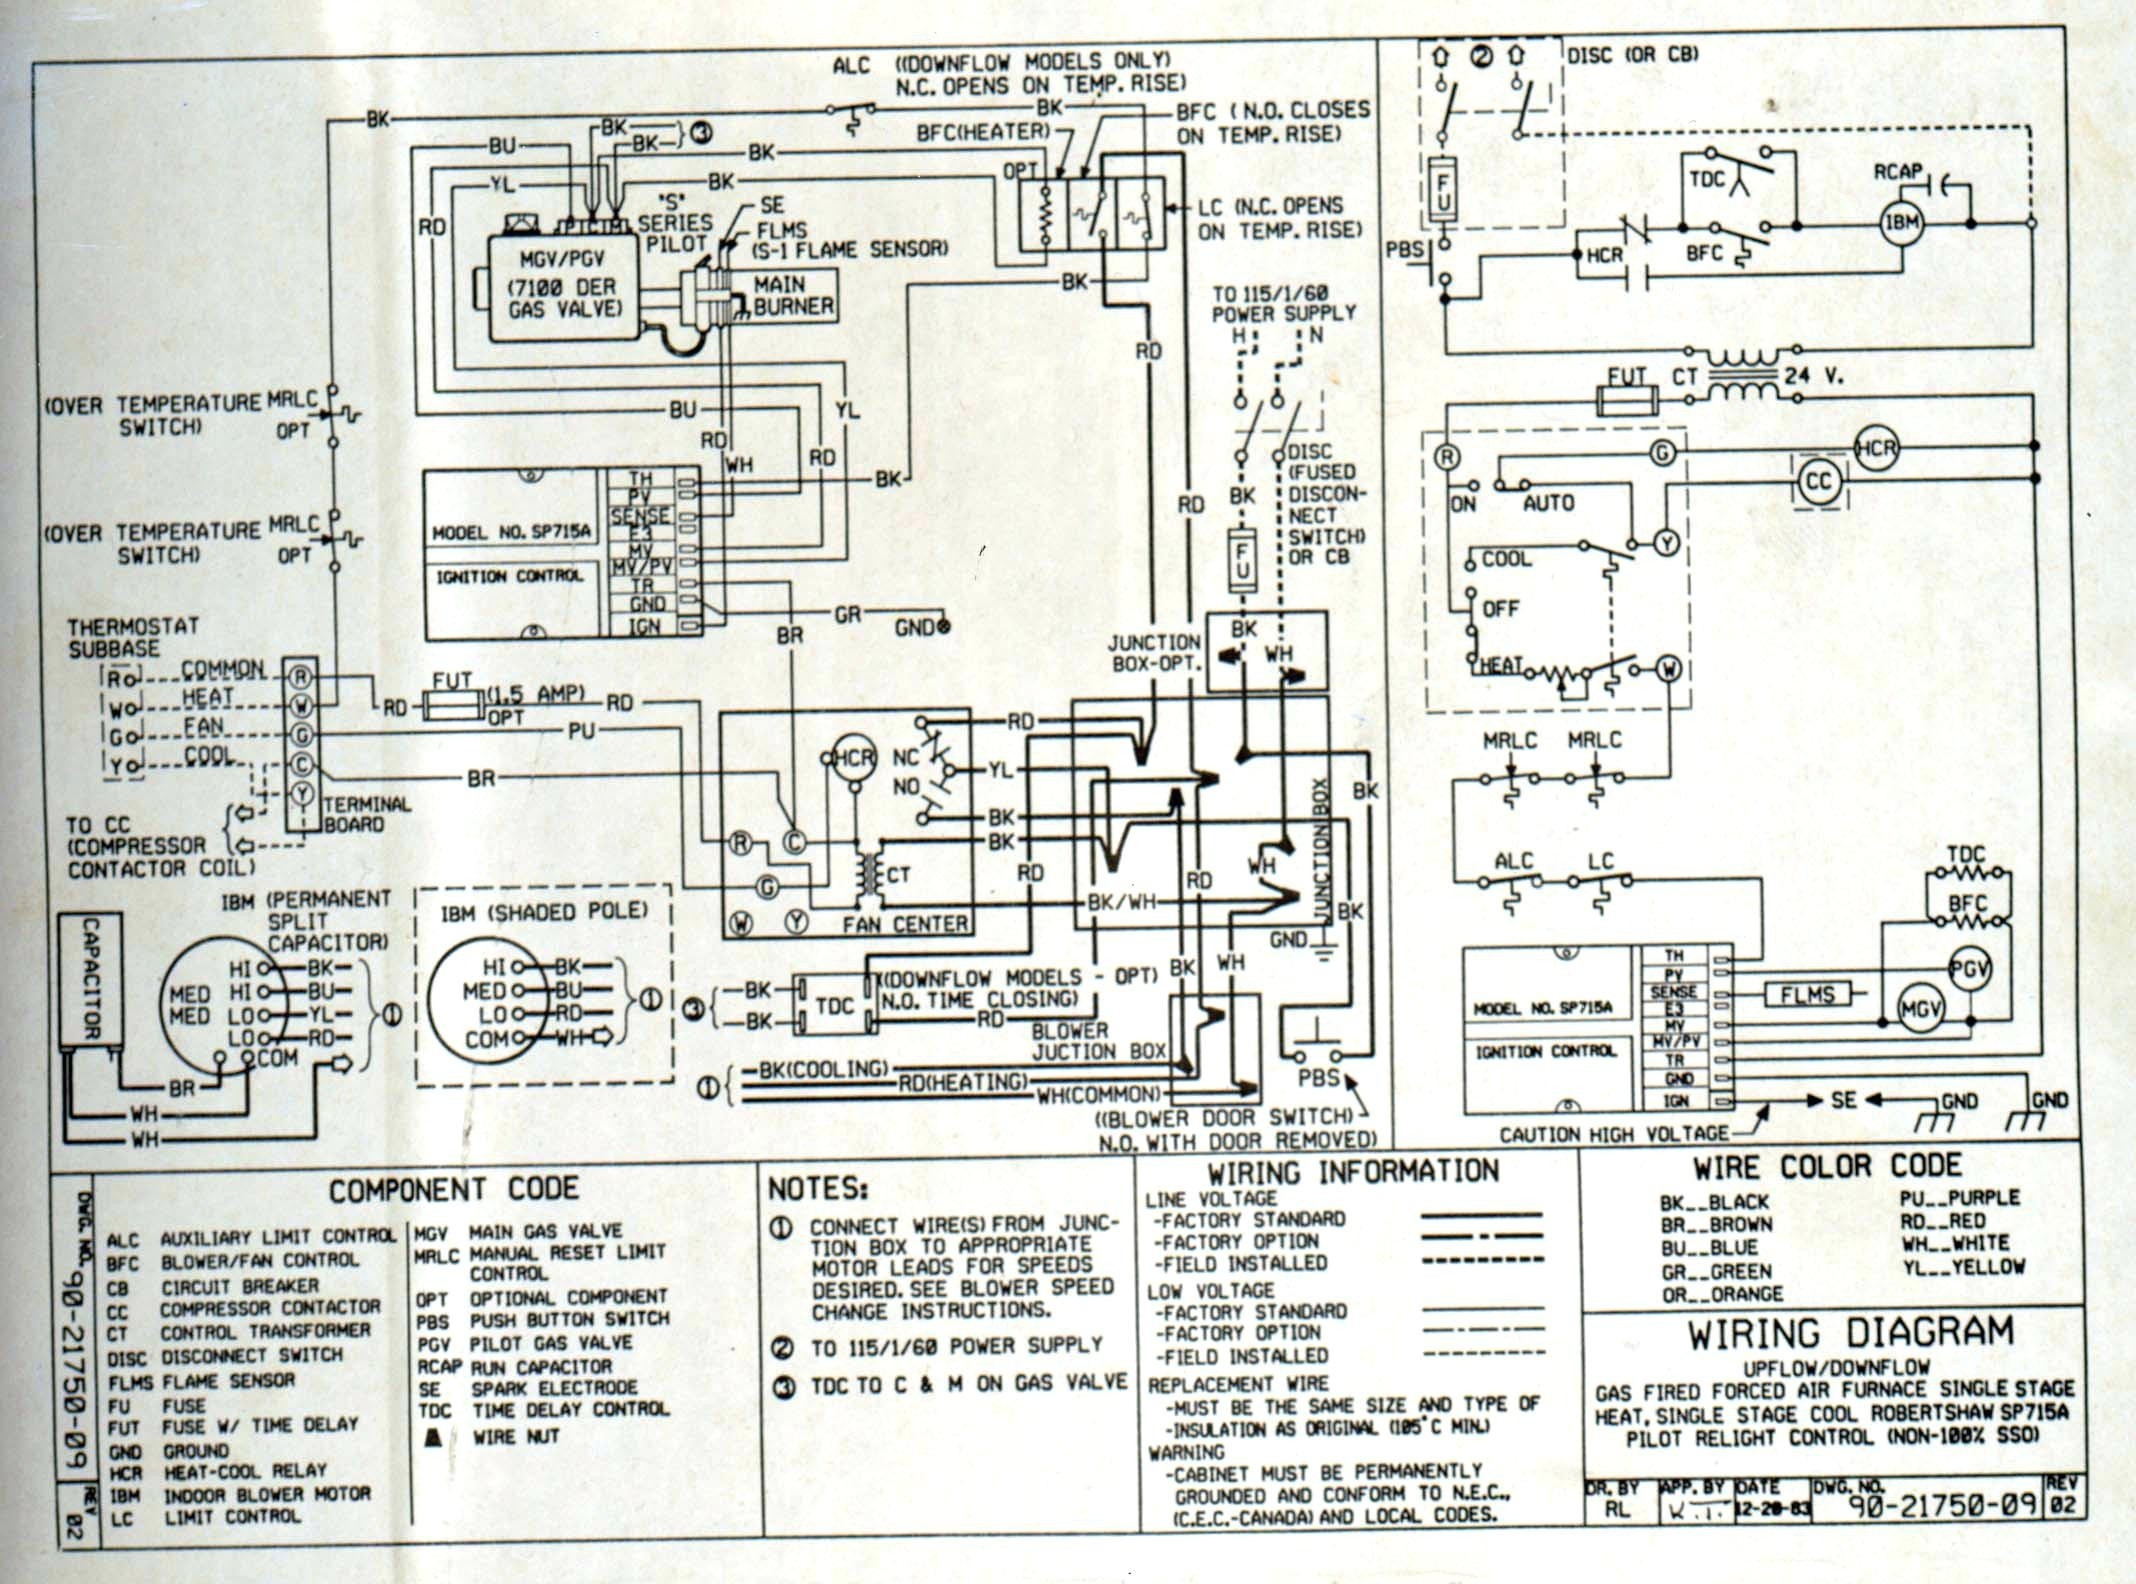 electric furnace wiring diagram Collection-Package Air Conditioning Unit Wiring Diagram Save Carrier Electric Furnace Wiring Diagrams For Payne Wiring Diagram 14-r